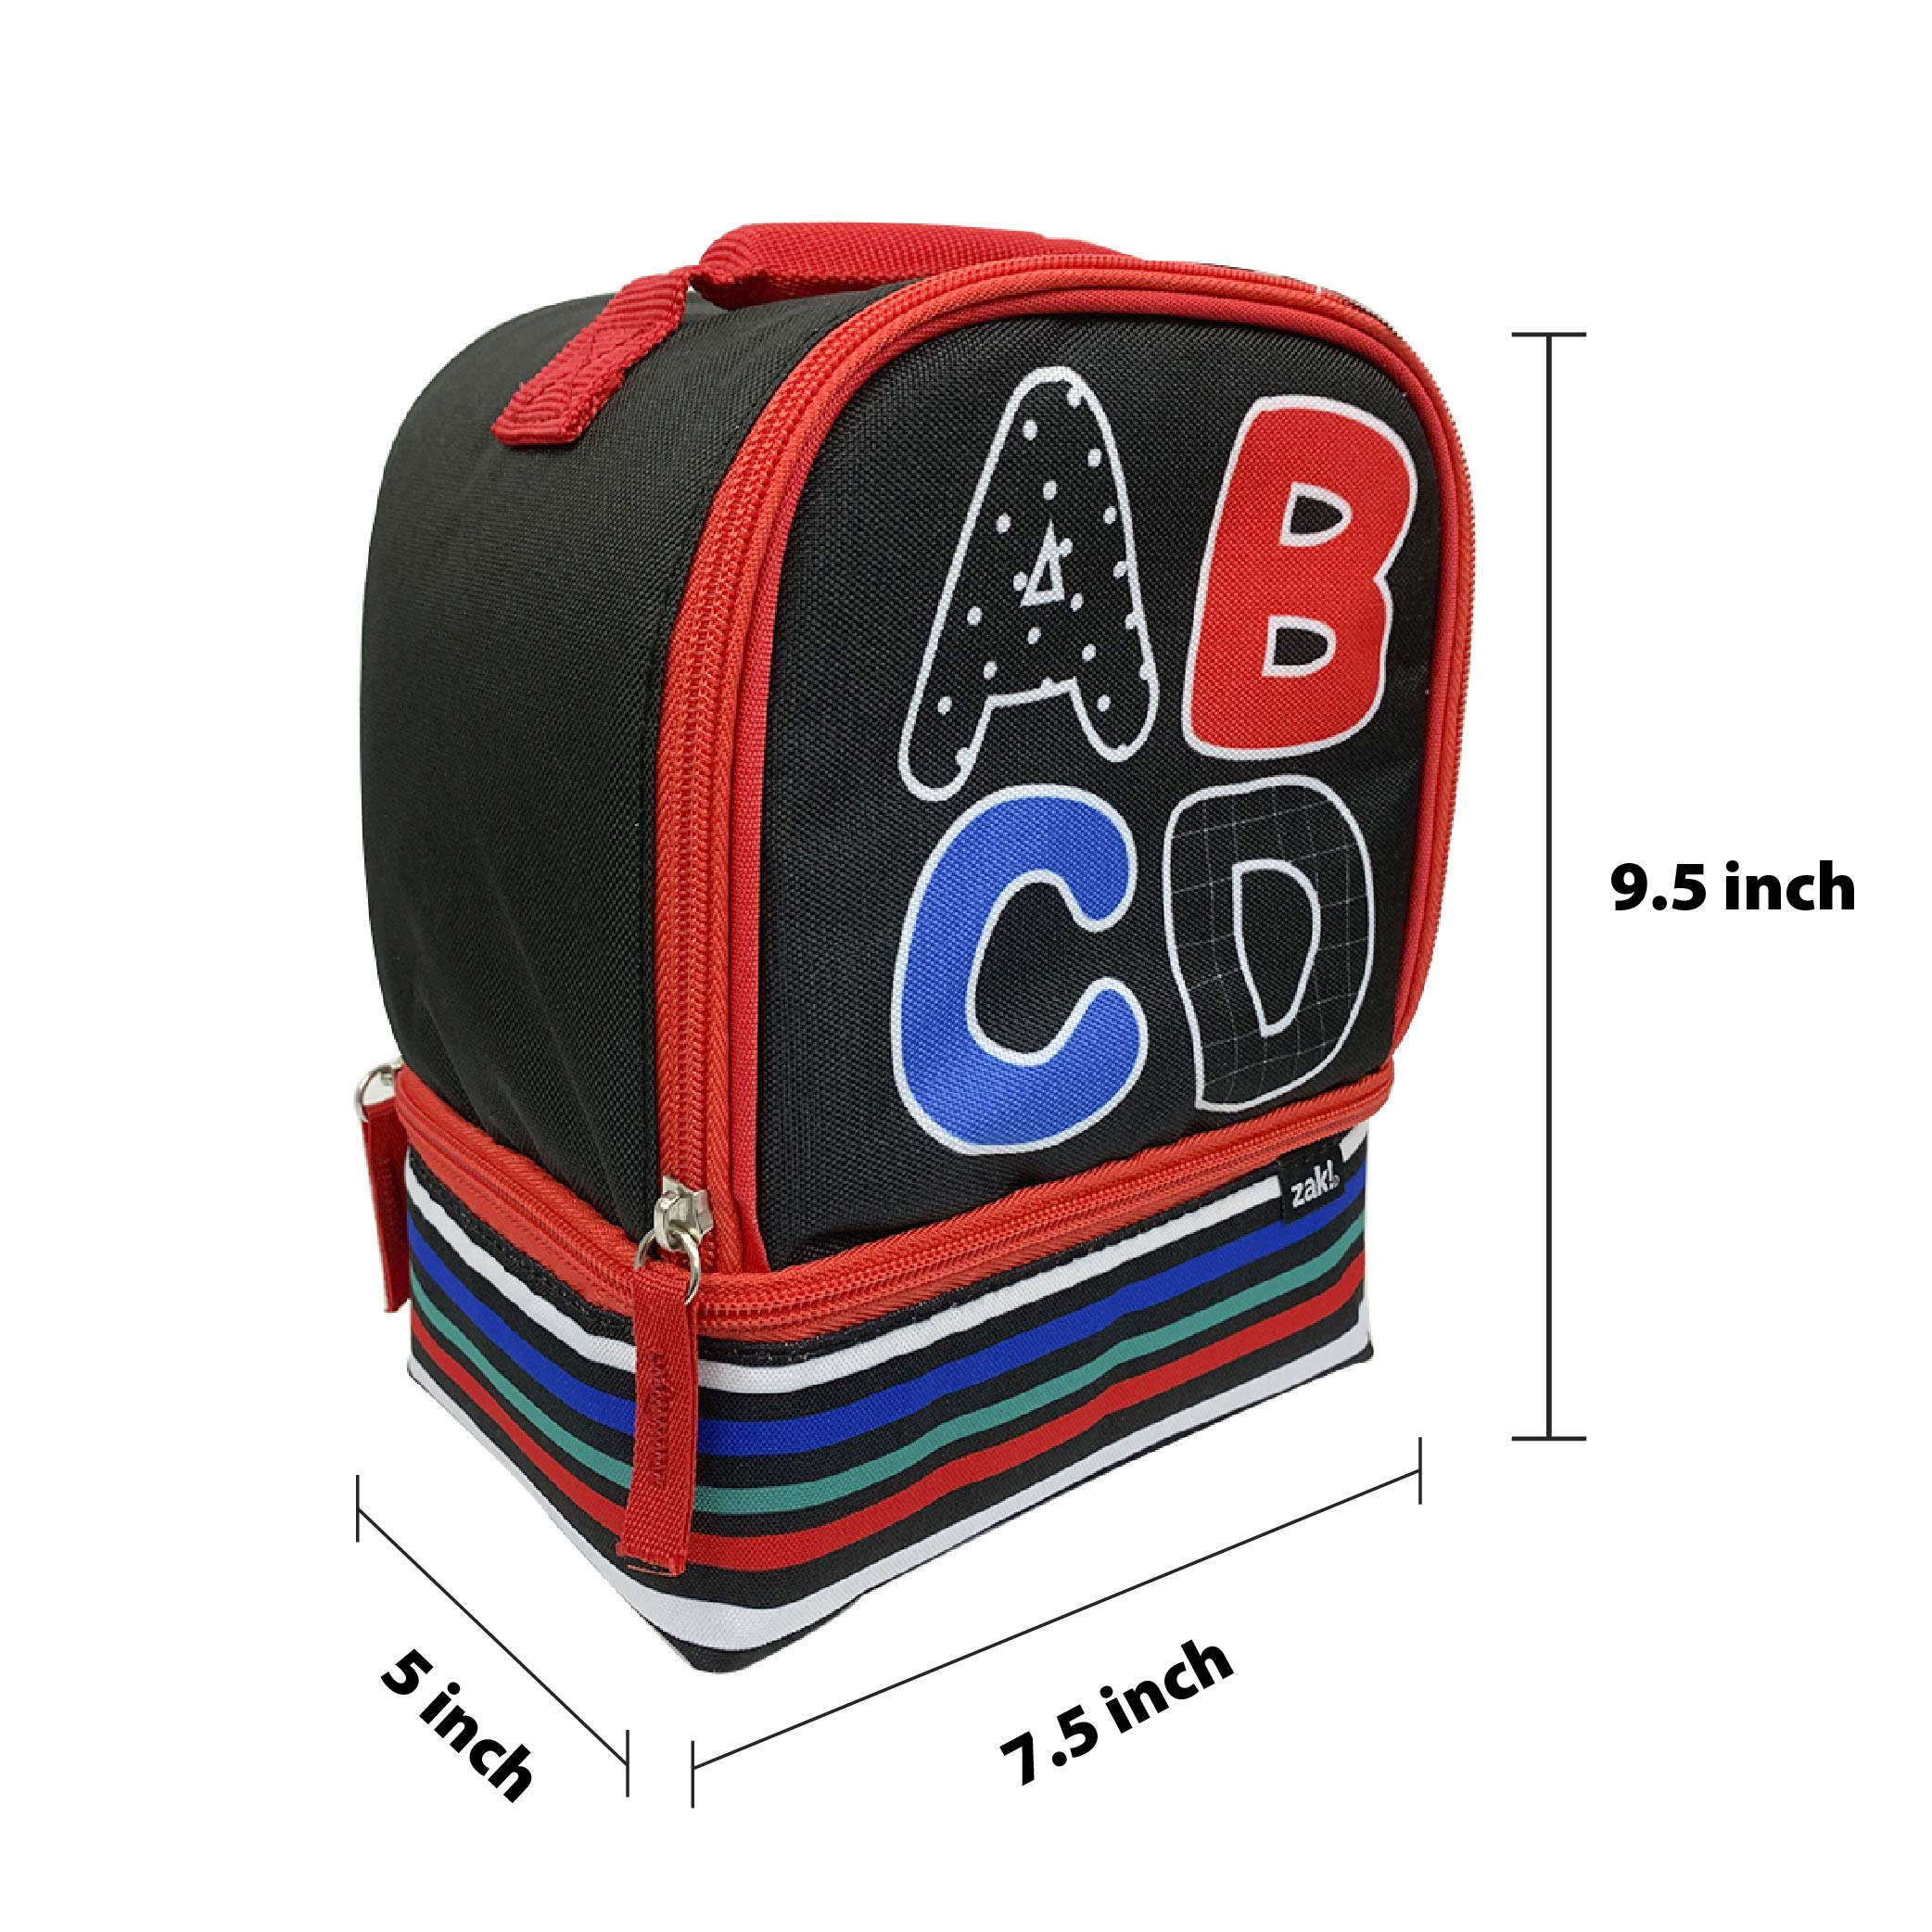 Grid Lock 2-compartment Reusable Insulated Lunch Bag, ABC slideshow image 4